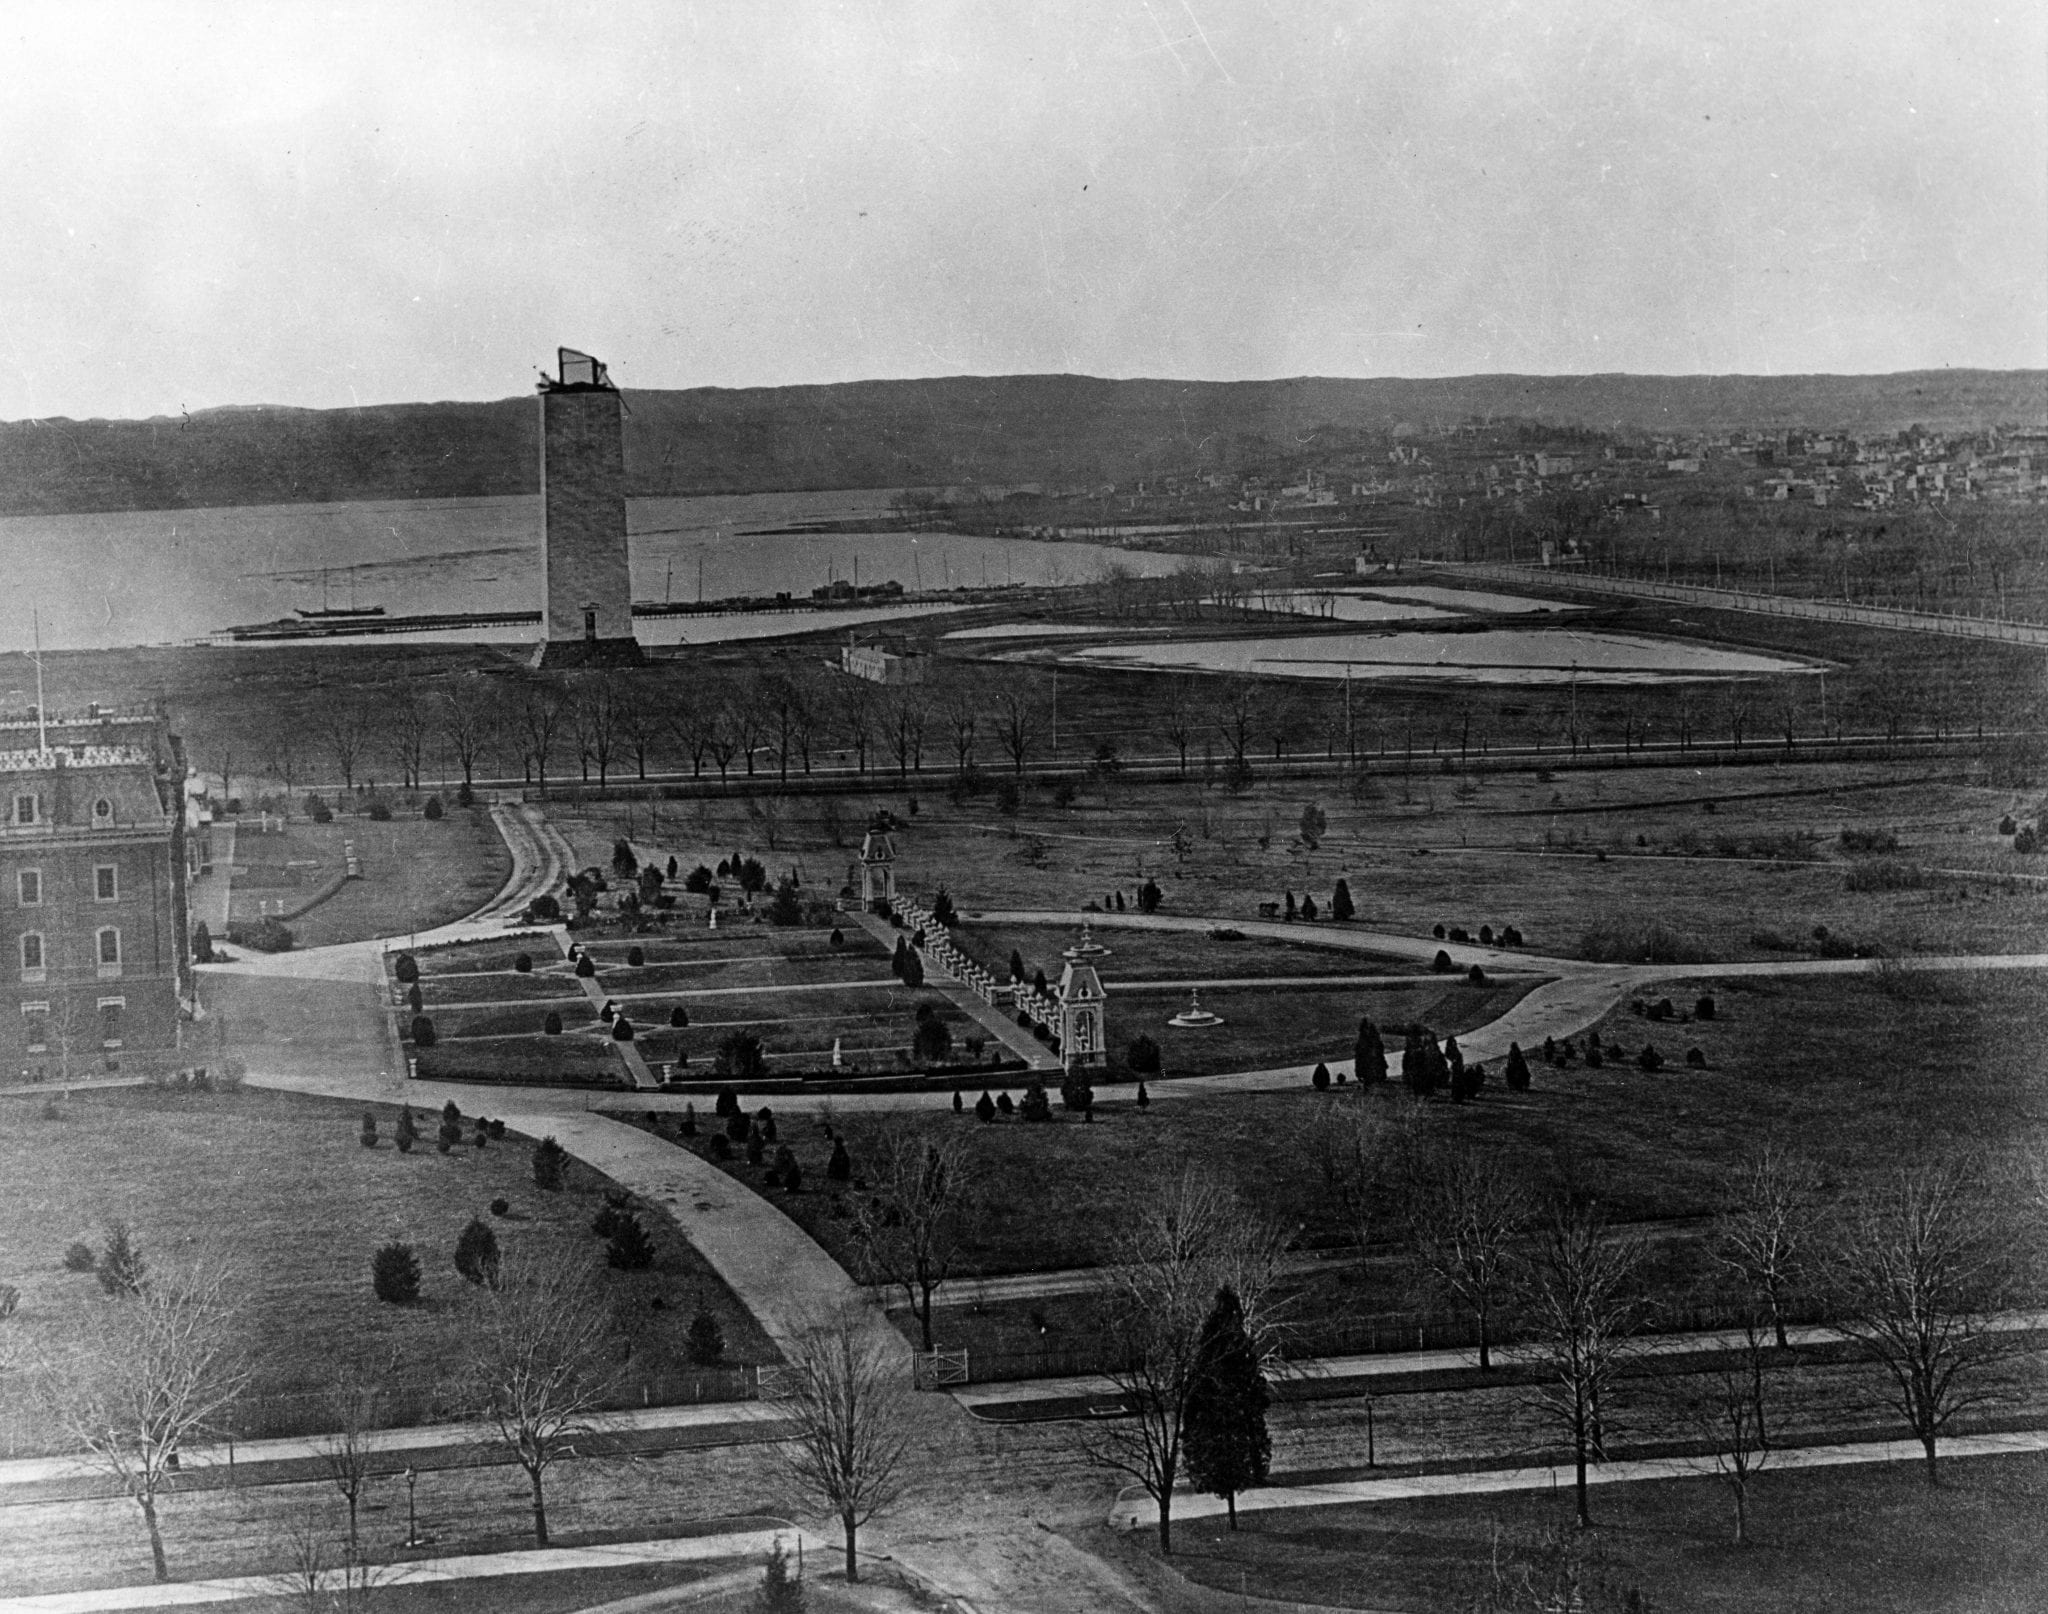 1877 view of the Washington Monument under construction as seen from the Tower of the Smithsonian (now the Smithsonian Castle)